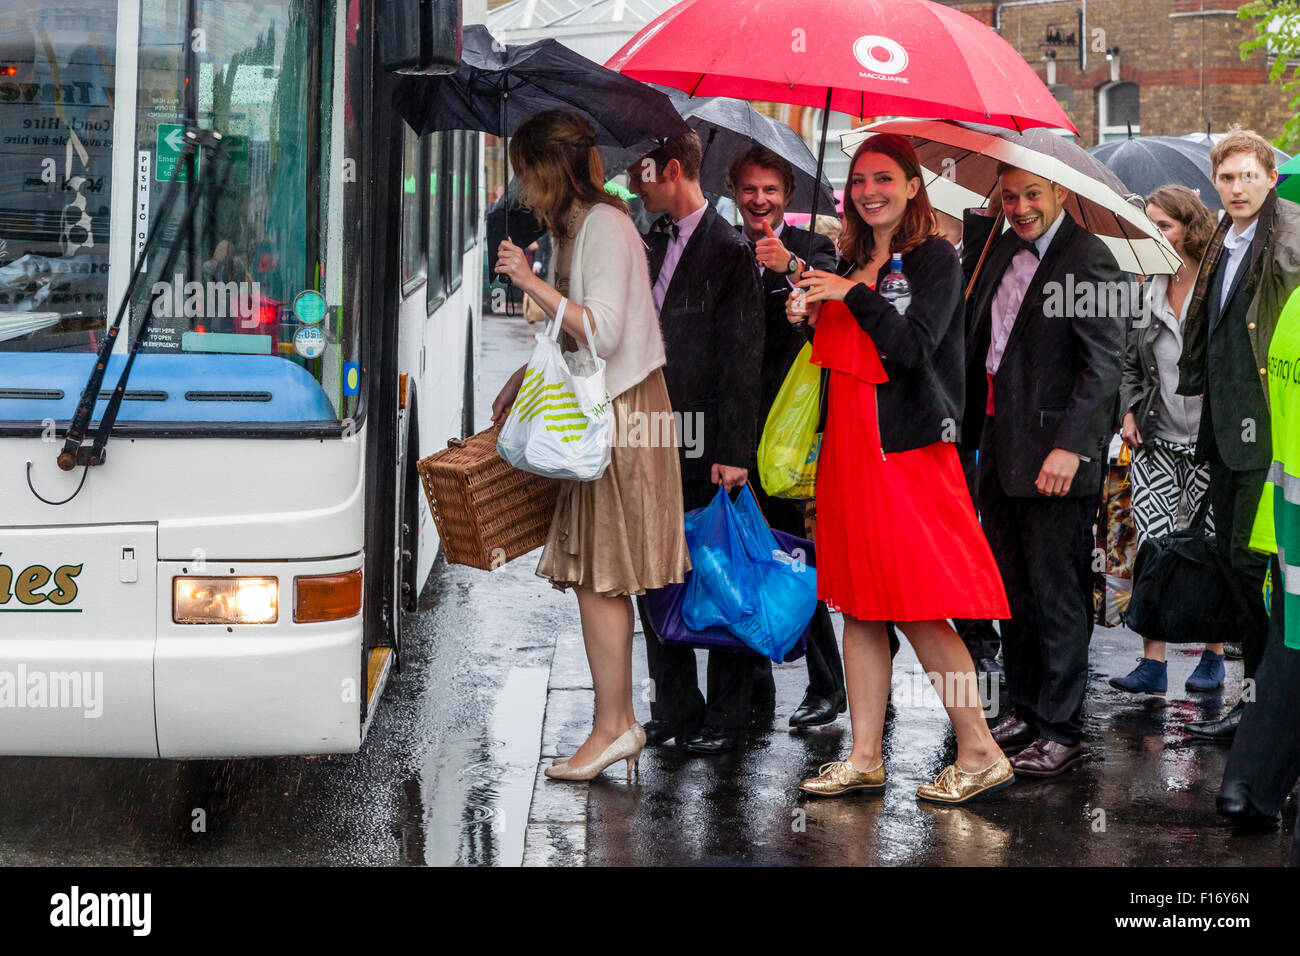 Young Opera Fans Queue To Board A Bus From Lewes To Glyndebourne Opera House To Watch The Opera 'Saul', - Stock Image